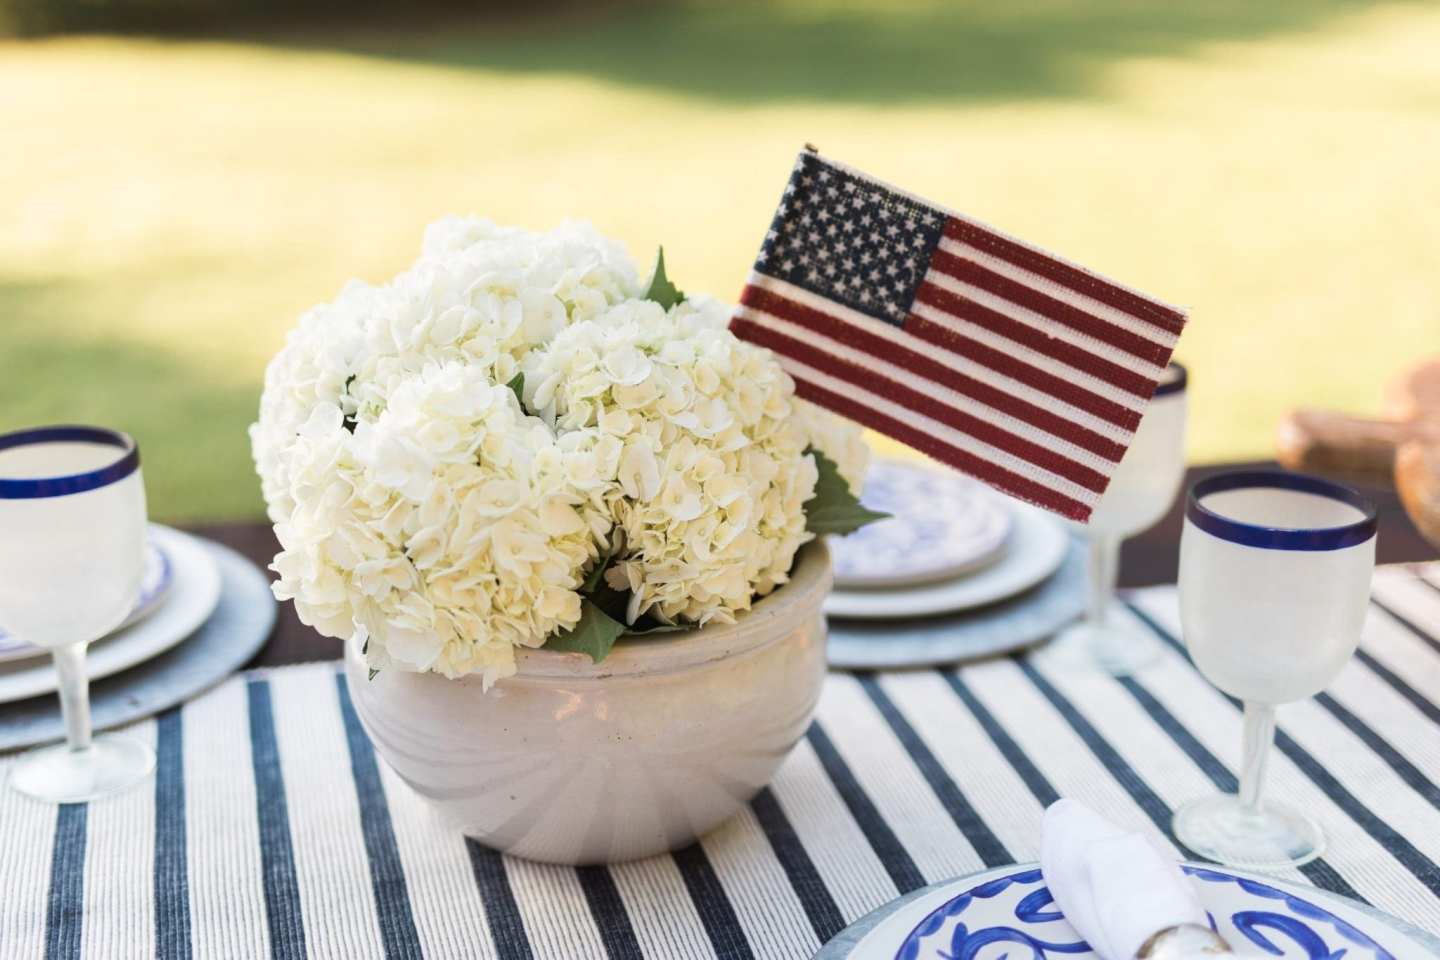 Patriotic decorations. July 4th centerpiece with white hydrangeas and American flag flower display.